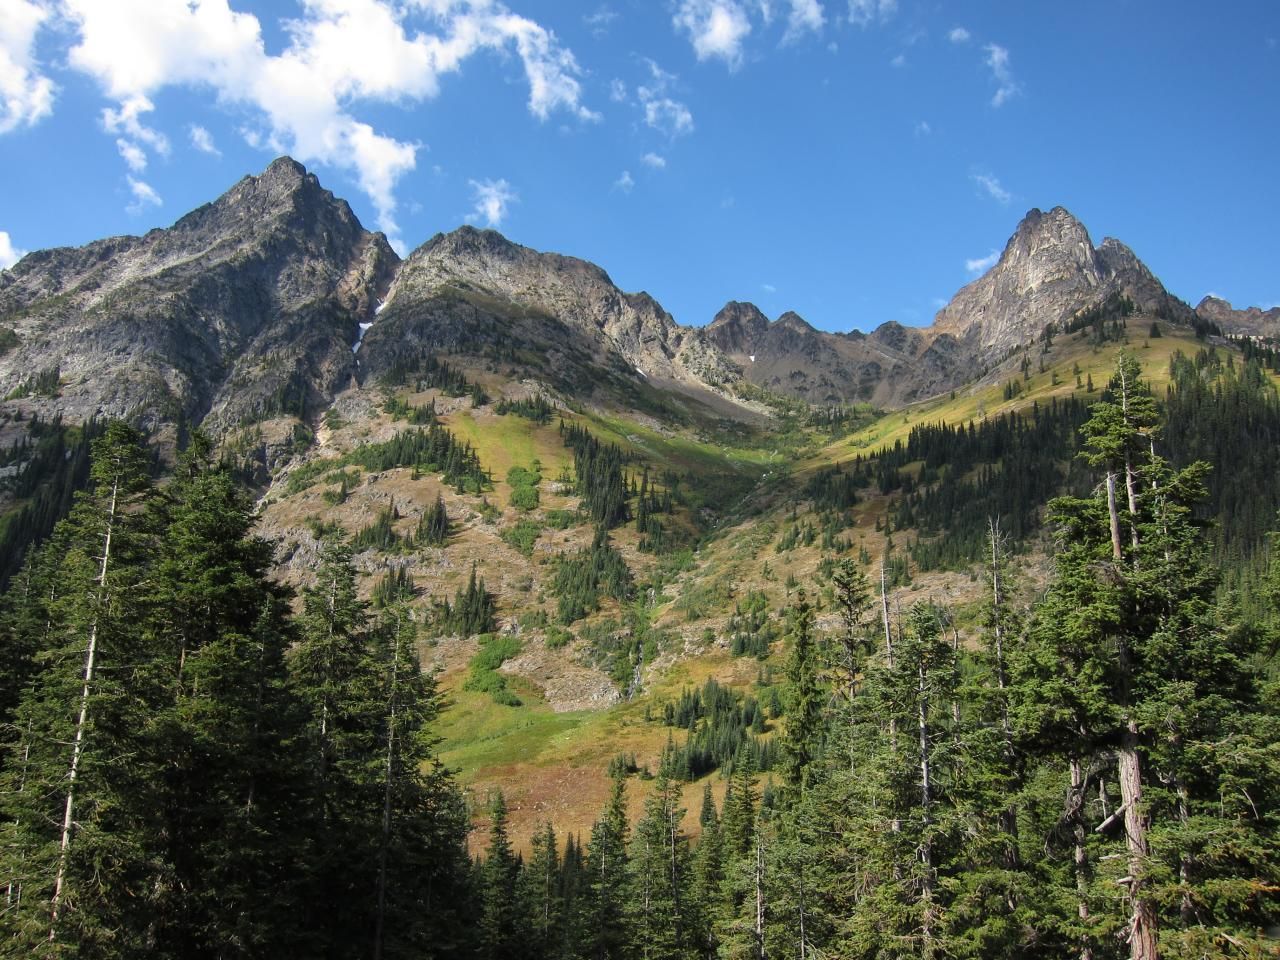 A military proposal to use more public lands riles locals in